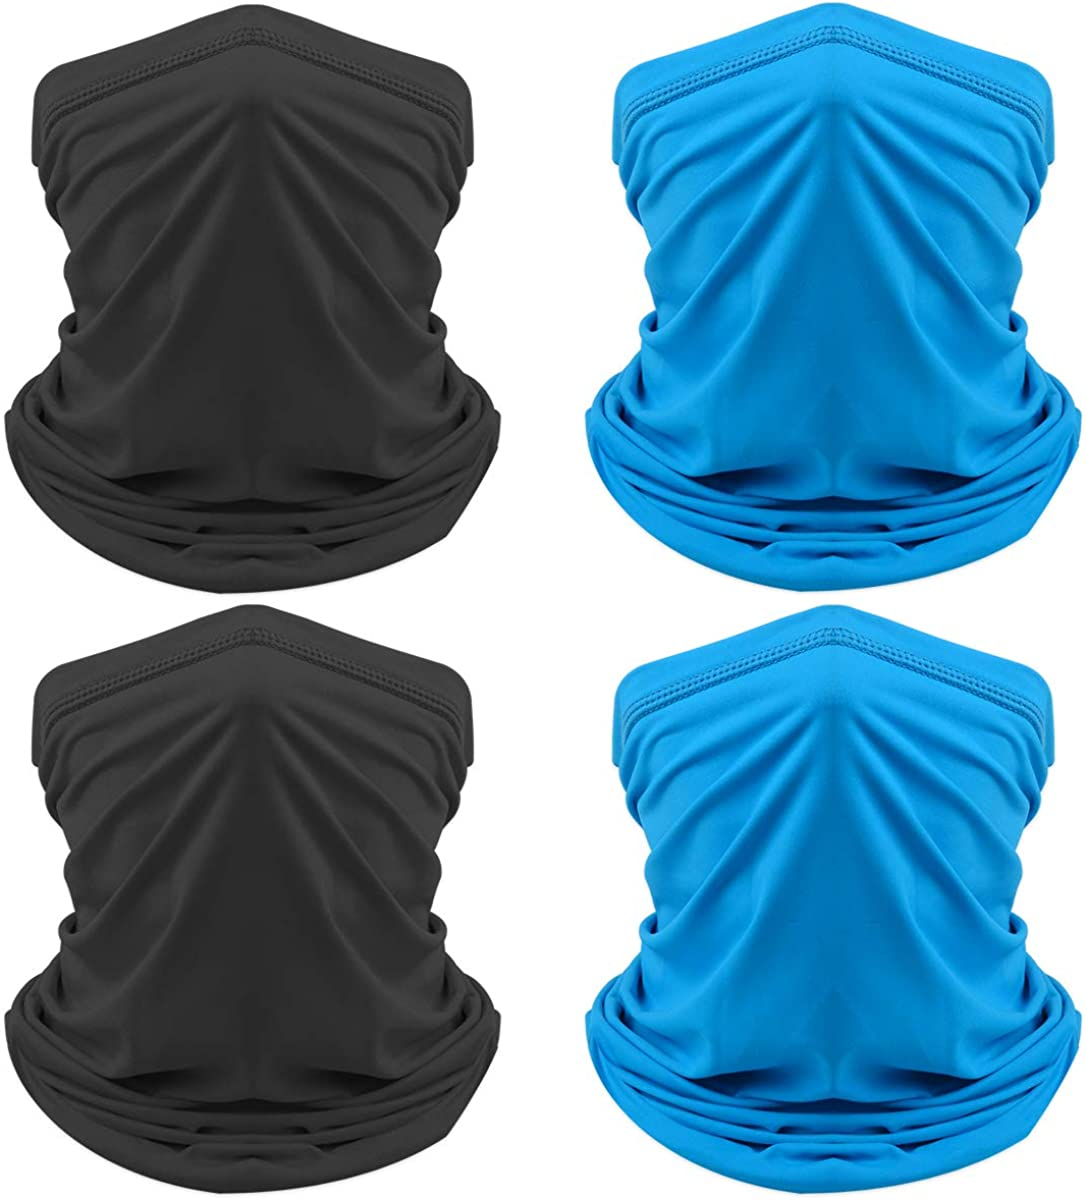 Bandanas Rave 3d Print Face Mask Cover Outdoors Protect from Dust Sun Wind Balaclava Headband for Unisex